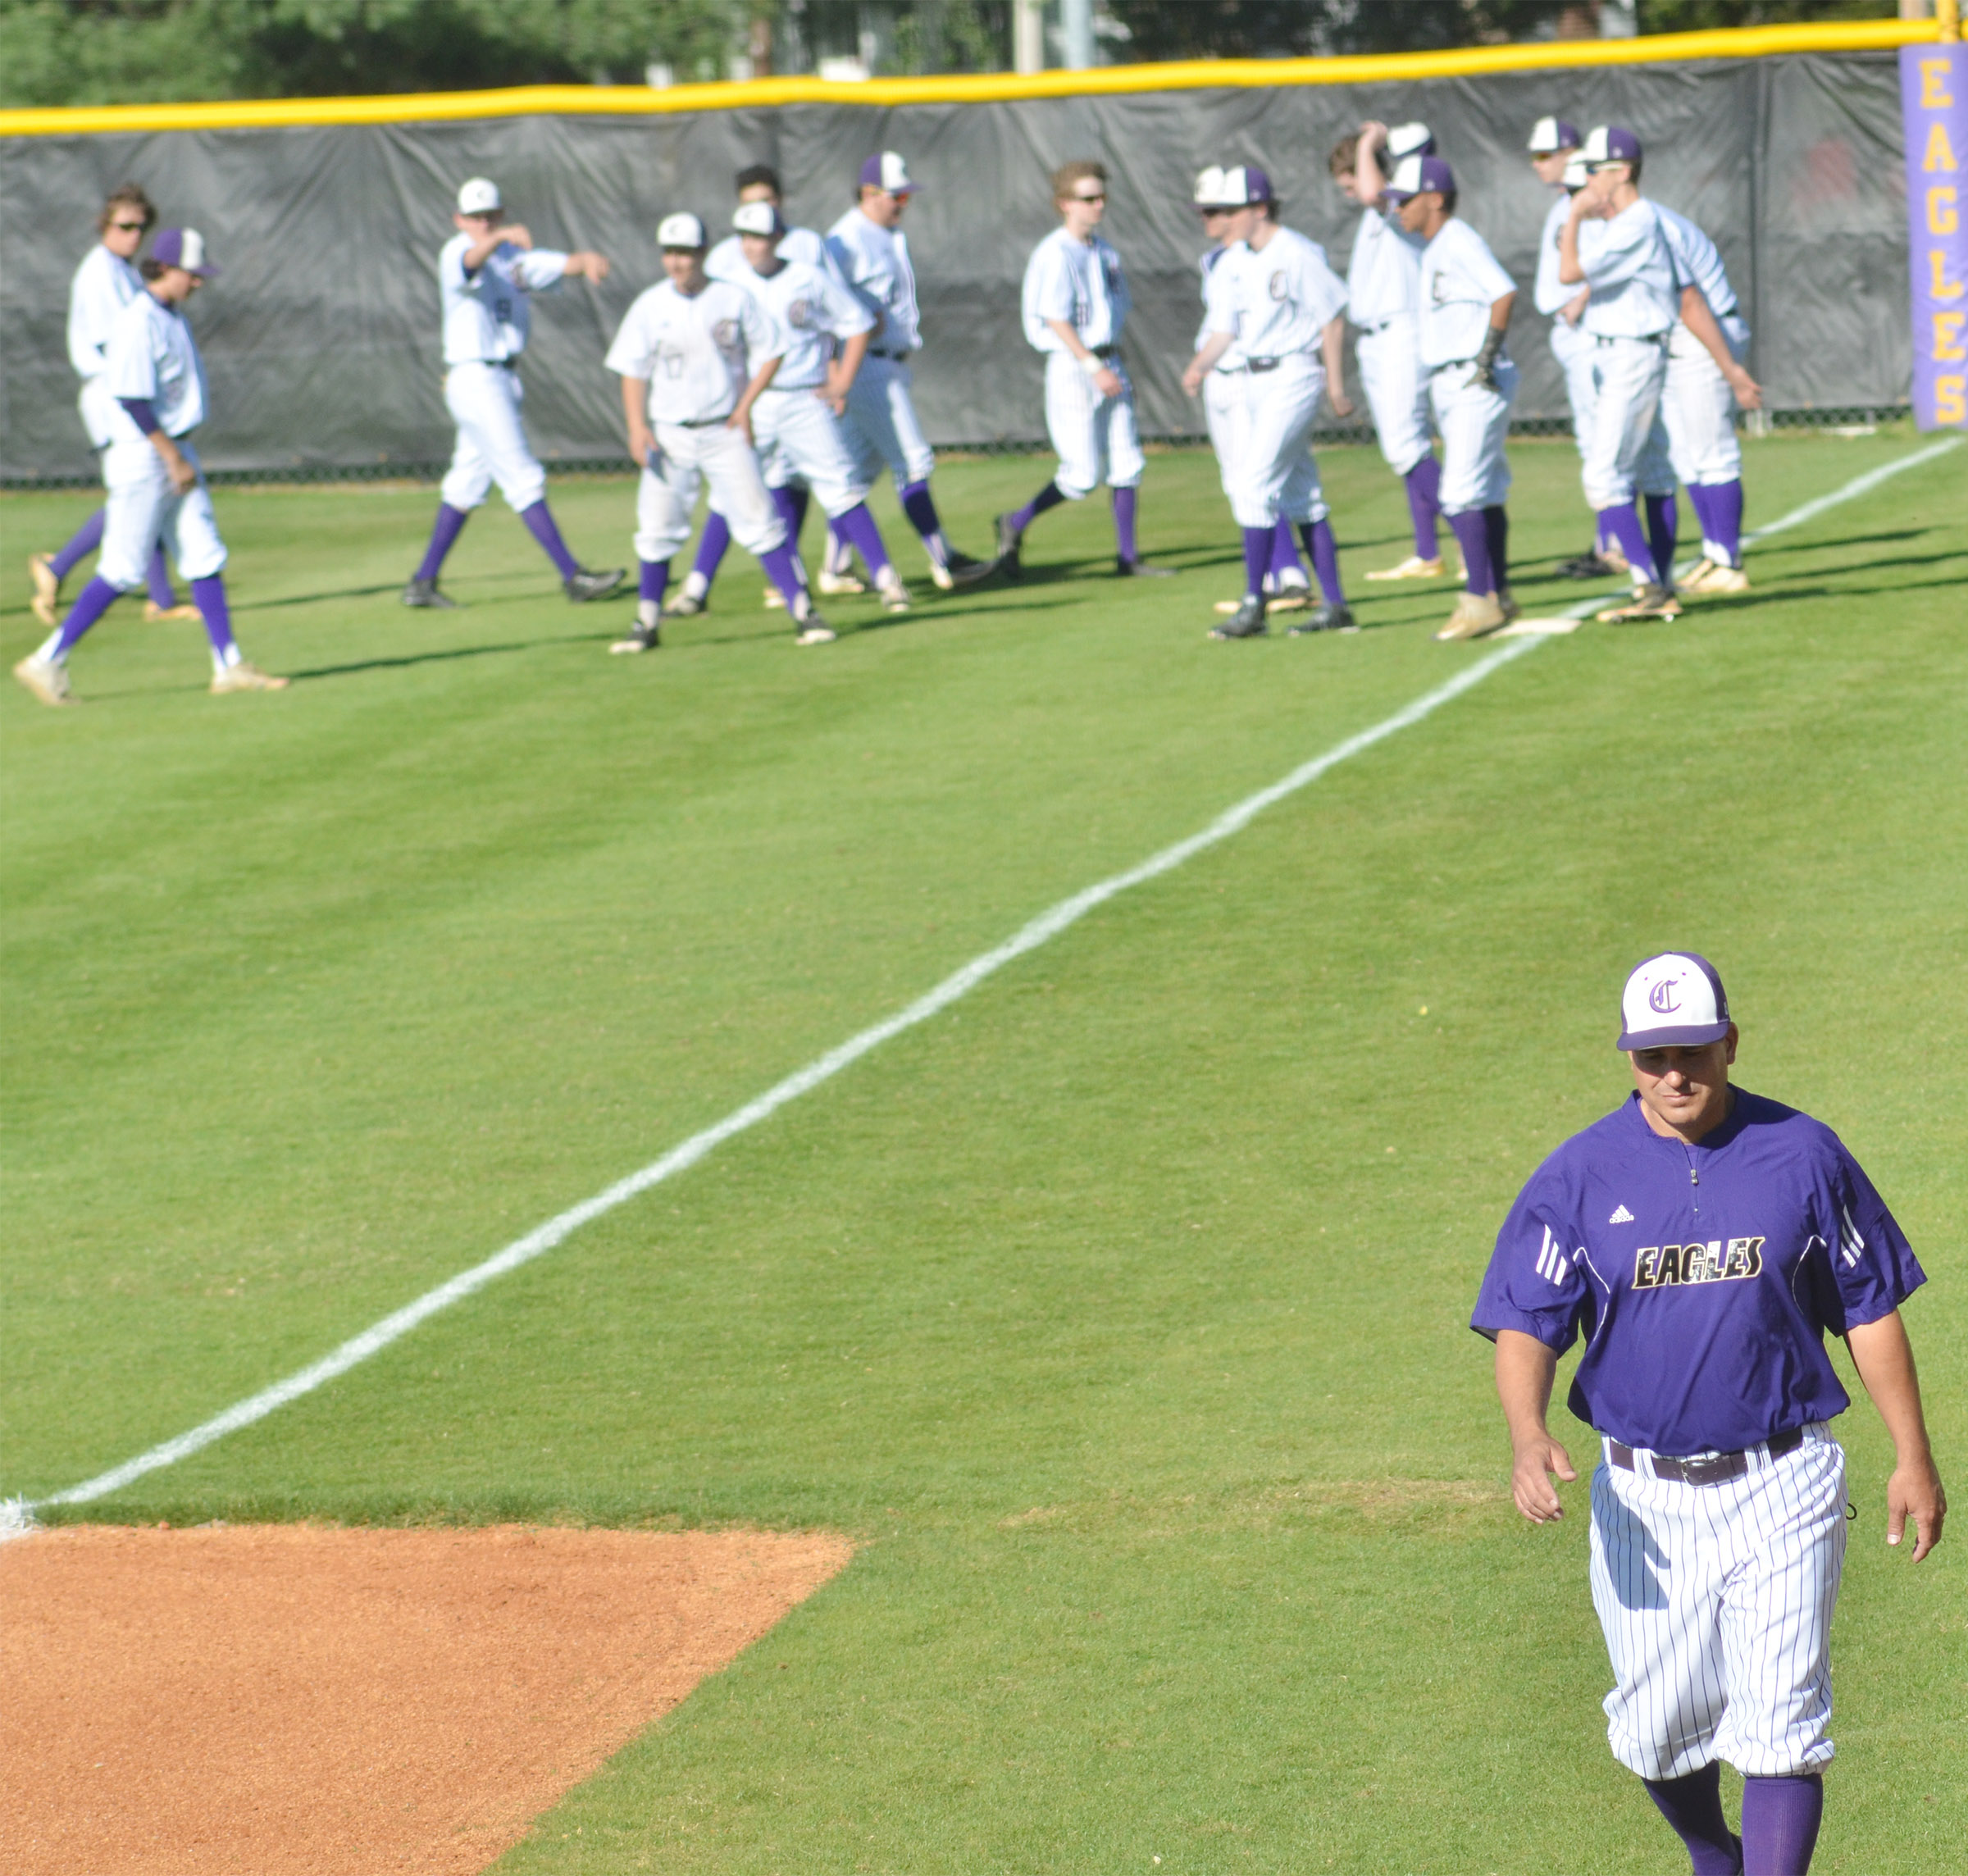 CHS head baseball coach Kirby Smith walks to the dugout after talking to his players.